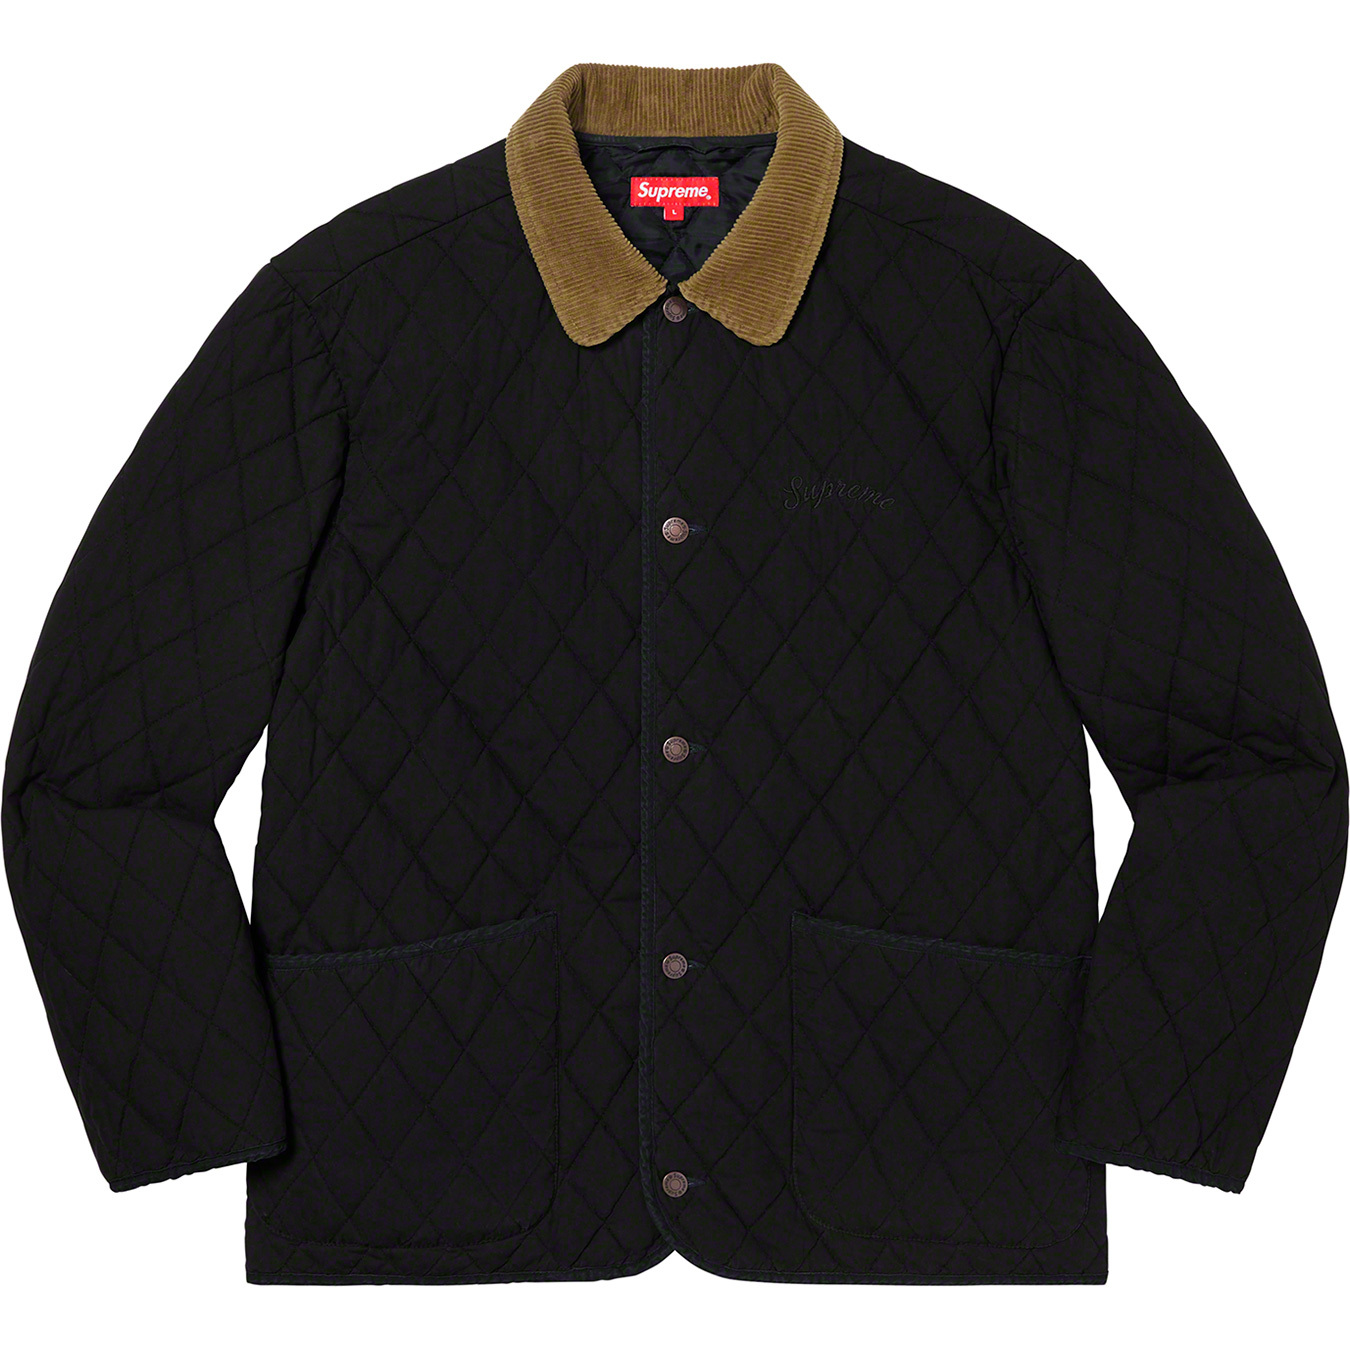 supreme-19aw-19fw-fall-winter-quilted-paisley-jacket